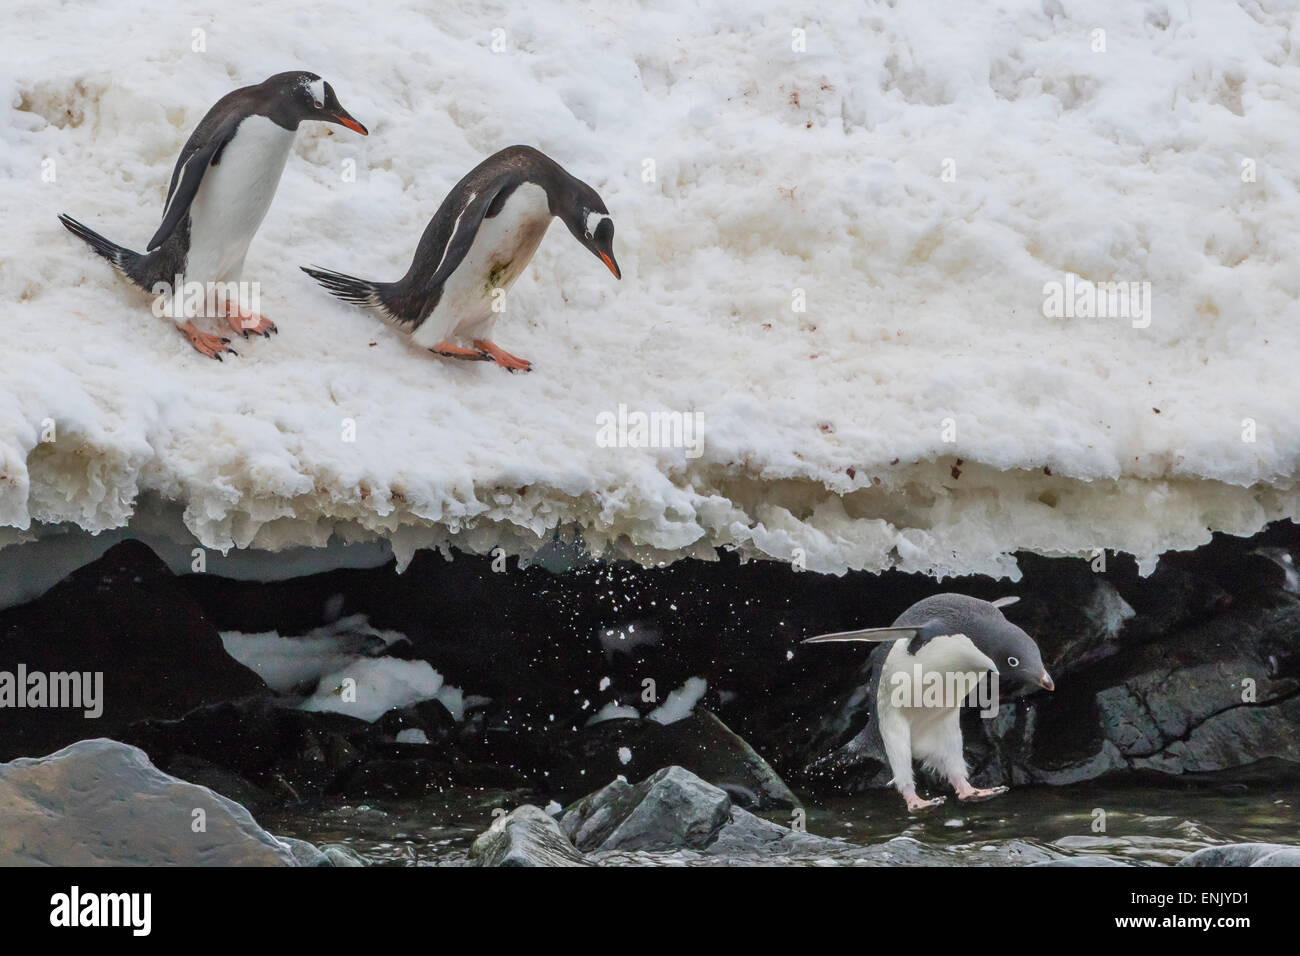 Gentoo penguins (Pygoscelis papua) leaping into the sea with Adelie penguin at Booth Island, Antarctica, Polar Regions - Stock Image